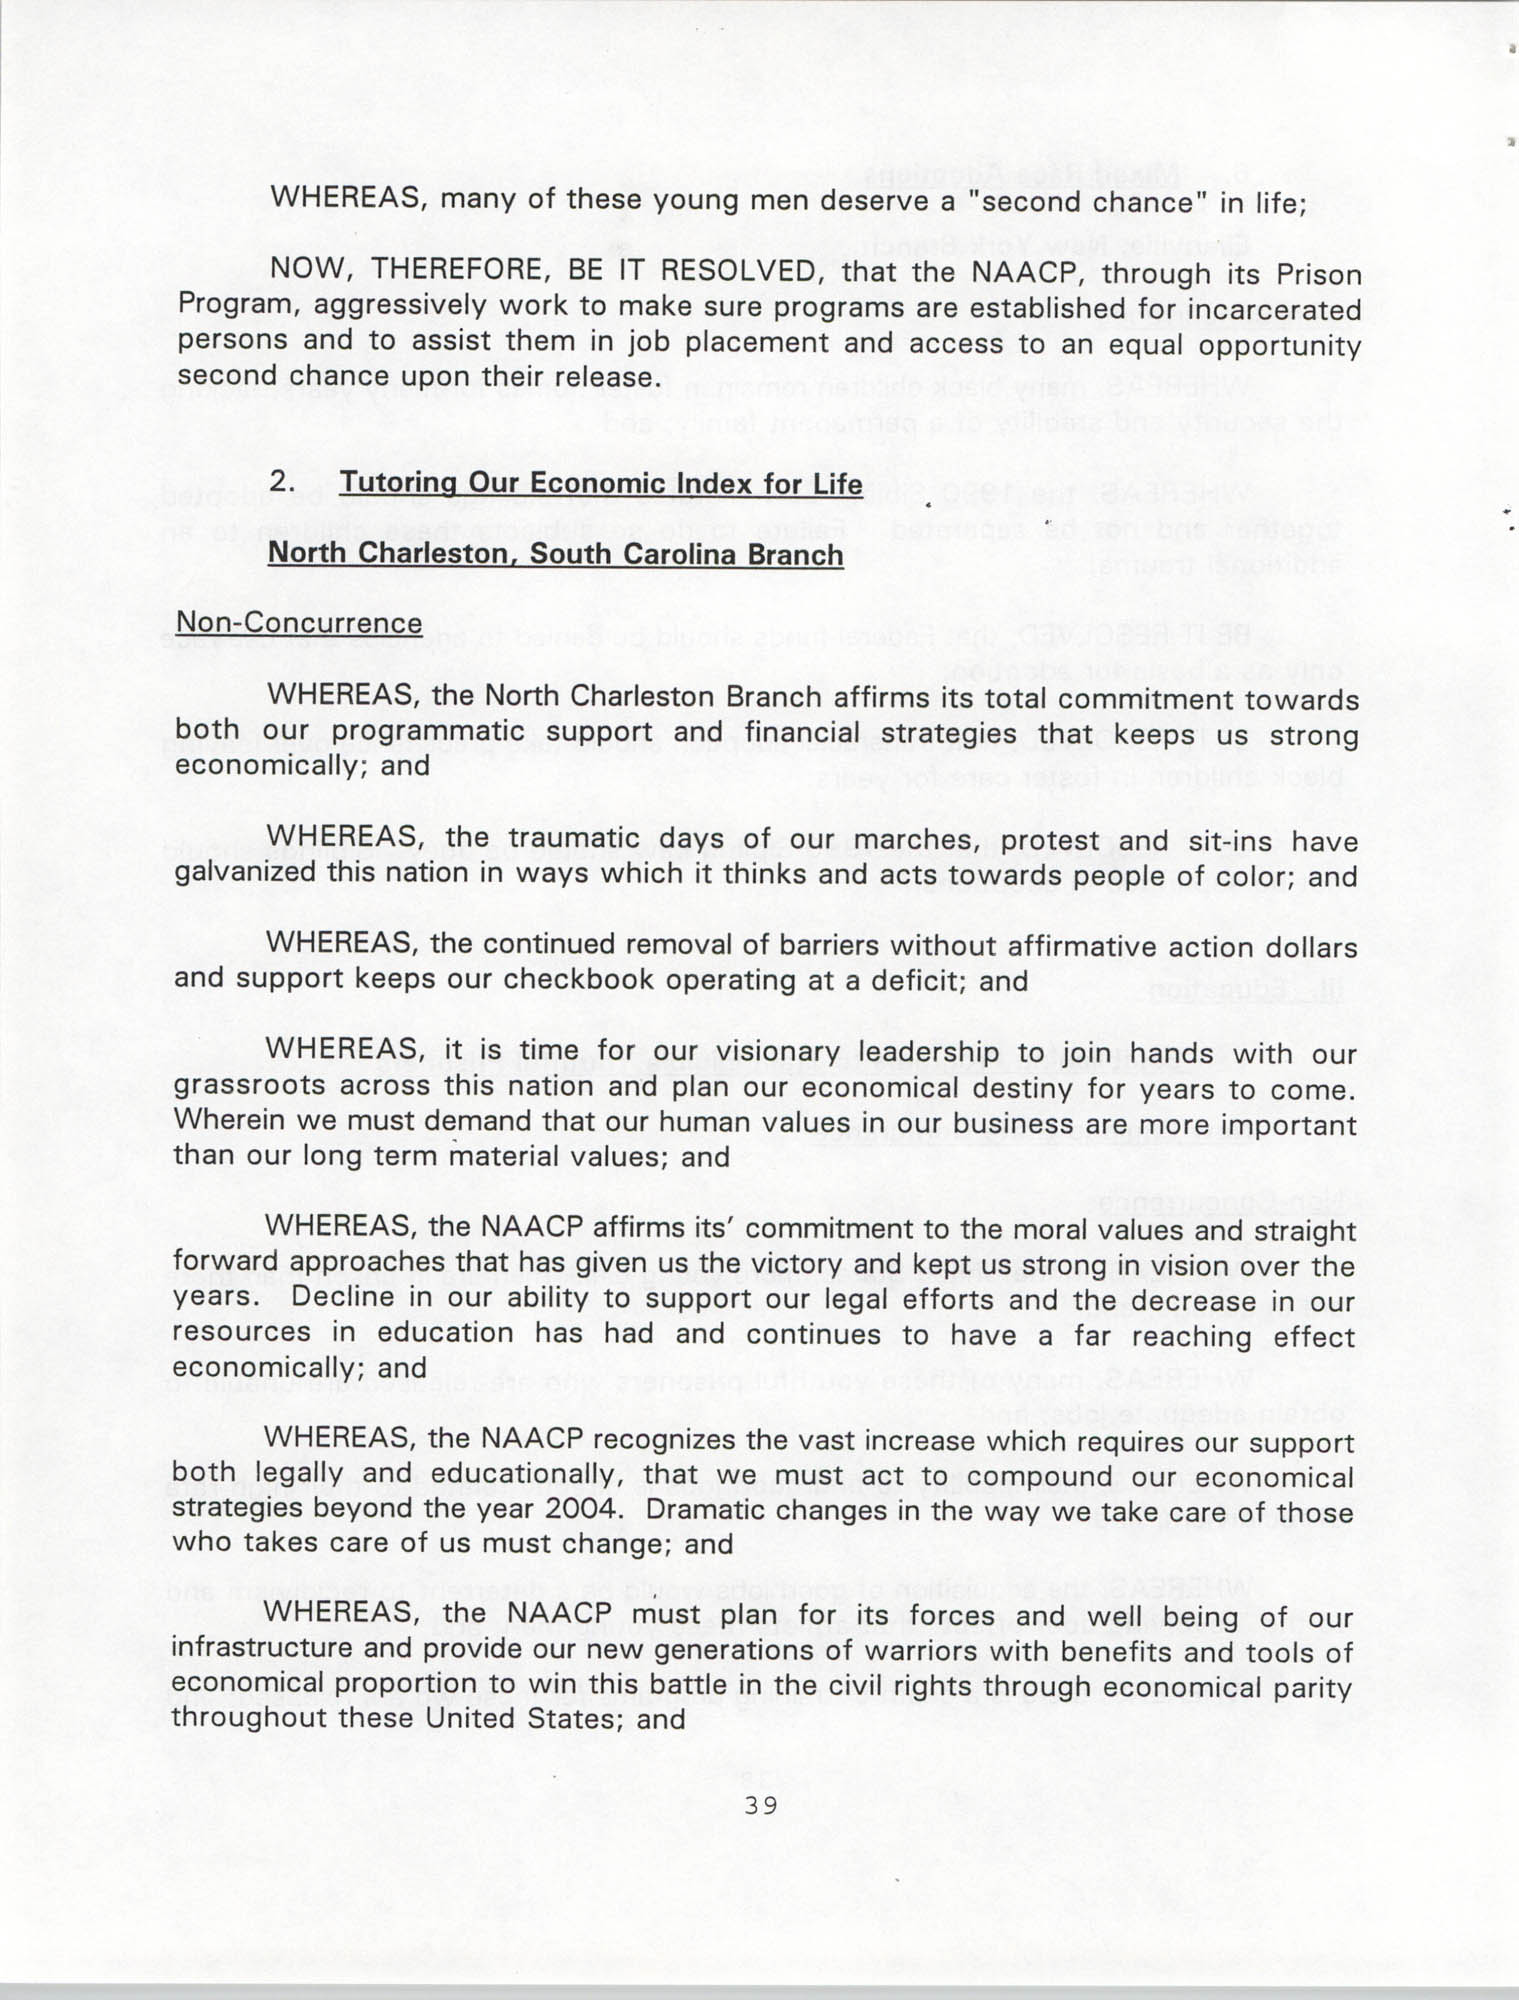 Resolutions Submitted Under Article X, Section 2 of the Constitution of the NAACP, 1994, Page 39